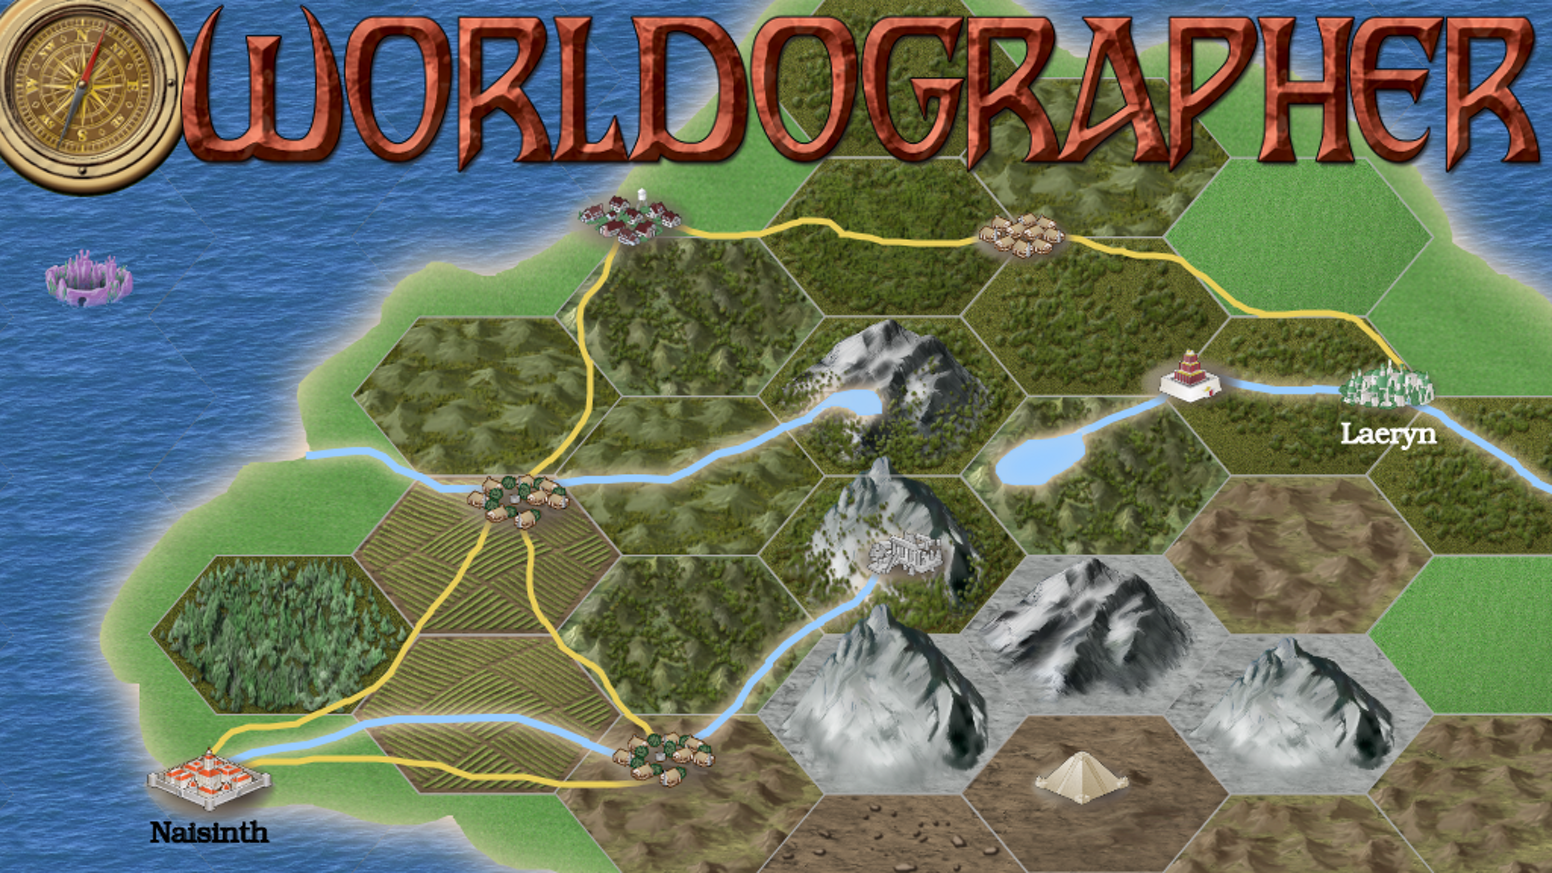 Worldographer: Hexographer 2   Easy Map/World Creator by Inkwell